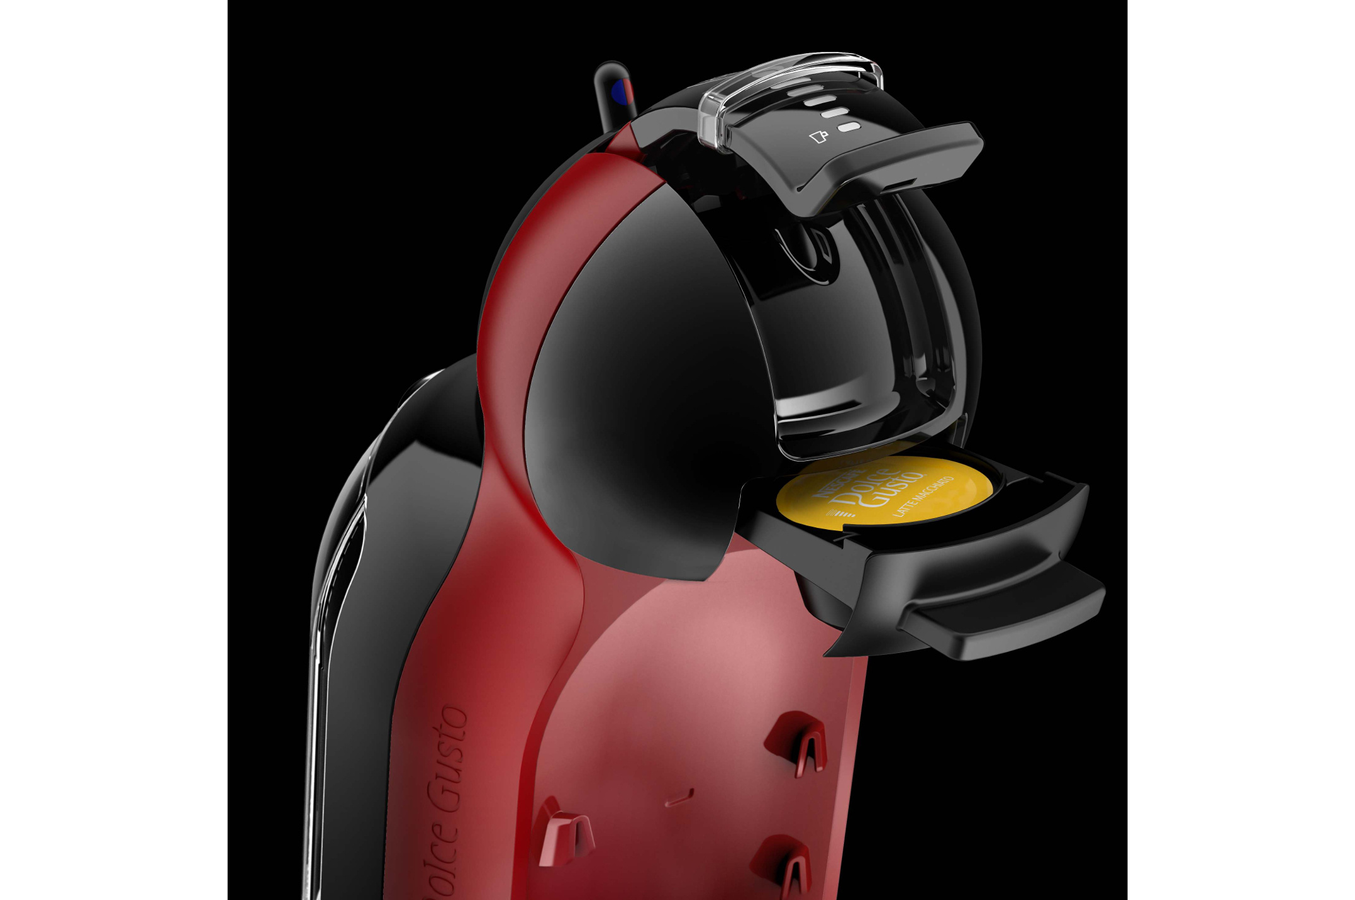 expresso krups nescafe dolce gusto mini me rouge et noir yy2749fd yy2749fd dolce gusto darty. Black Bedroom Furniture Sets. Home Design Ideas